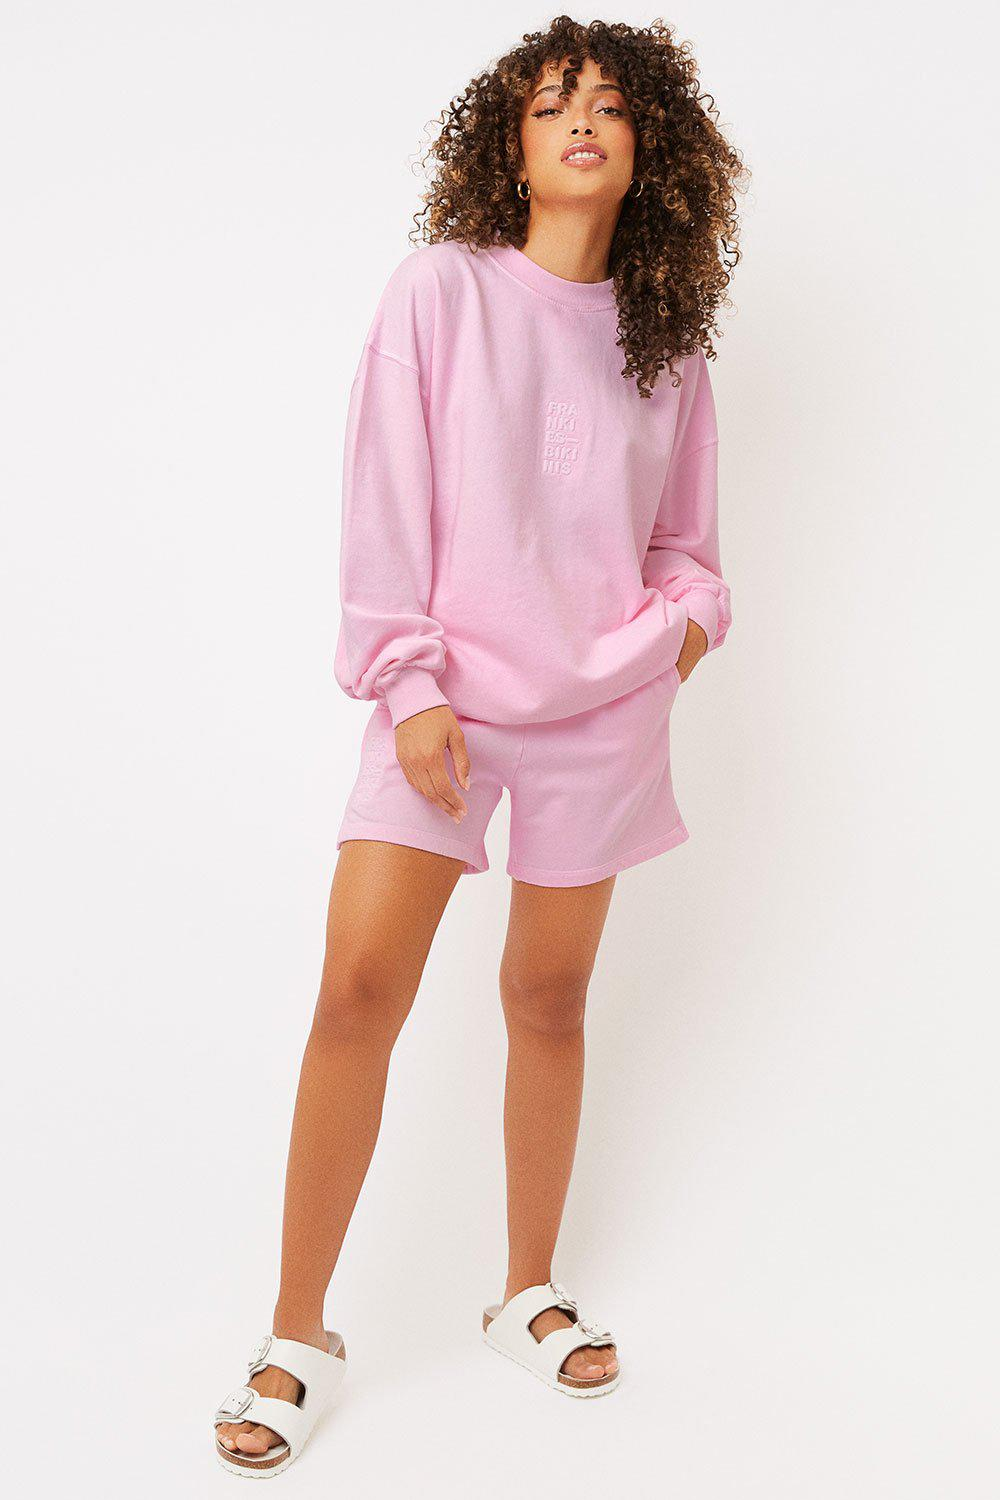 Bennie Oversized Crewneck Sweatshirt - Love Pink